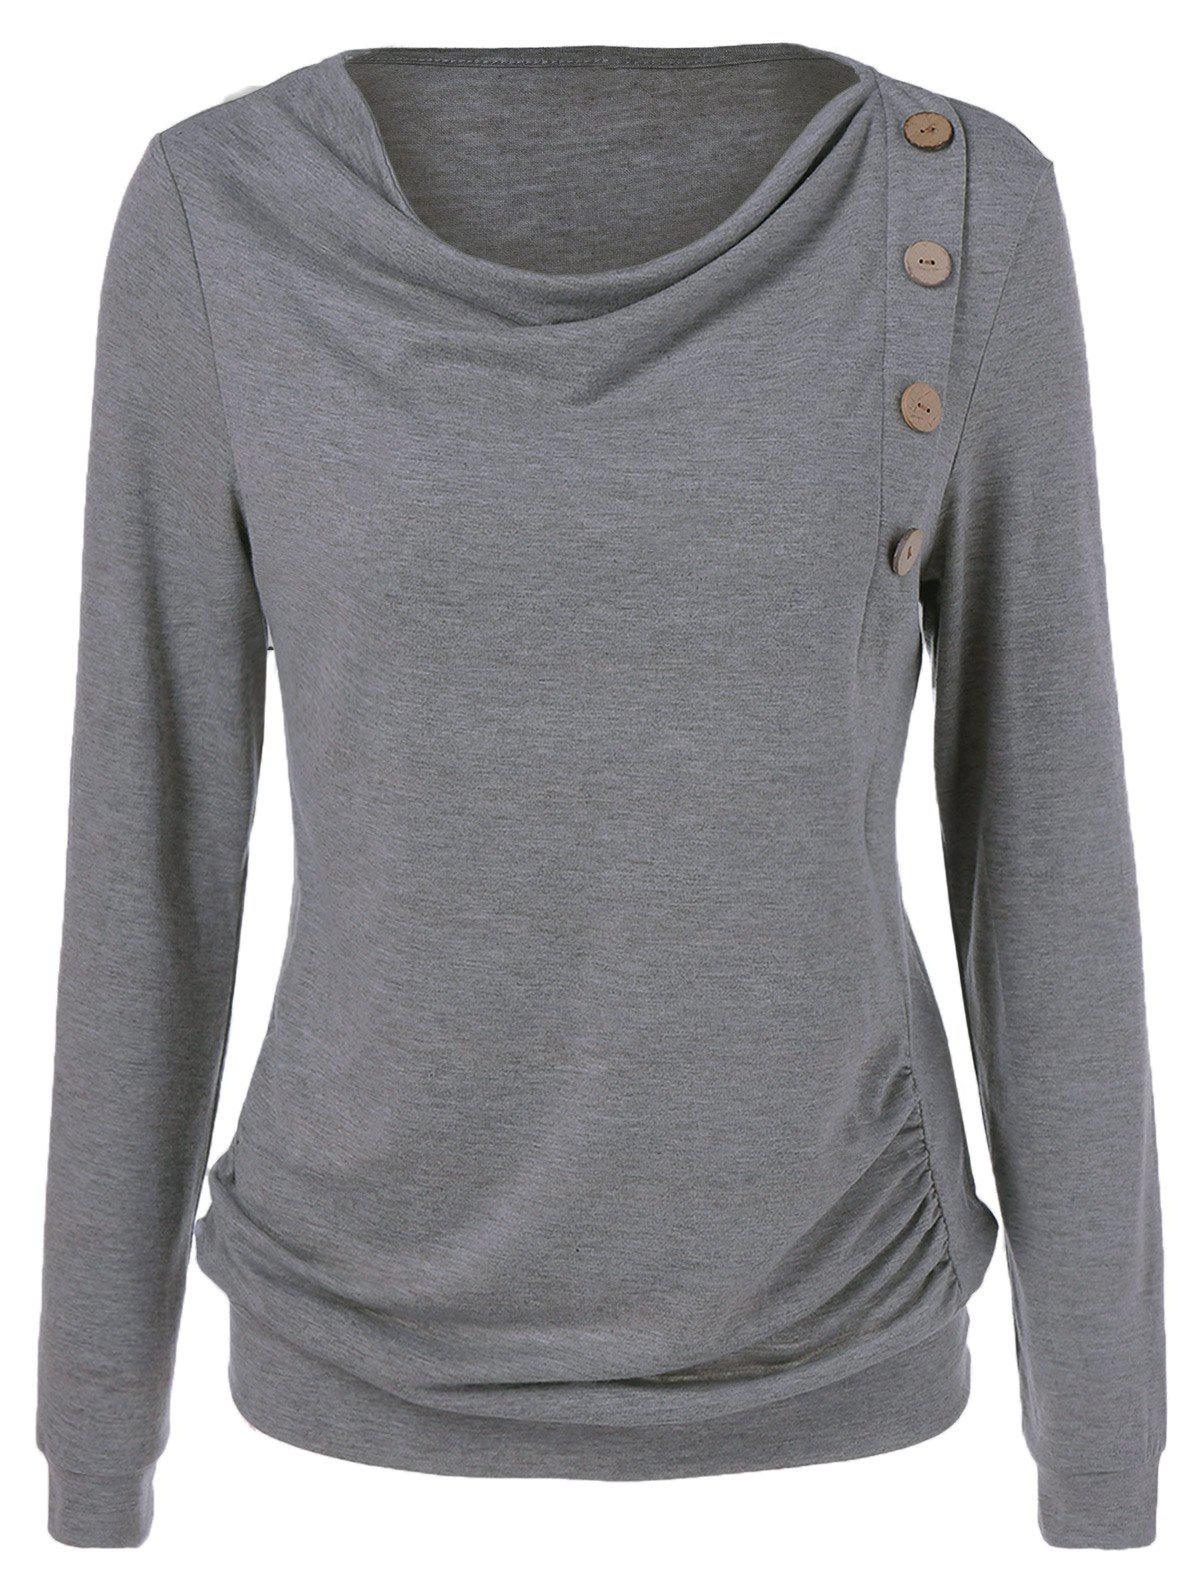 Side Button SweatshirtWOMEN<br><br>Size: XL; Color: GRAY; Material: Polyester; Shirt Length: Regular; Sleeve Length: Full; Style: Casual; Pattern Style: Solid; Season: Fall,Spring; Weight: 0.240kg; Package Contents: 1 x Sweatshirt;